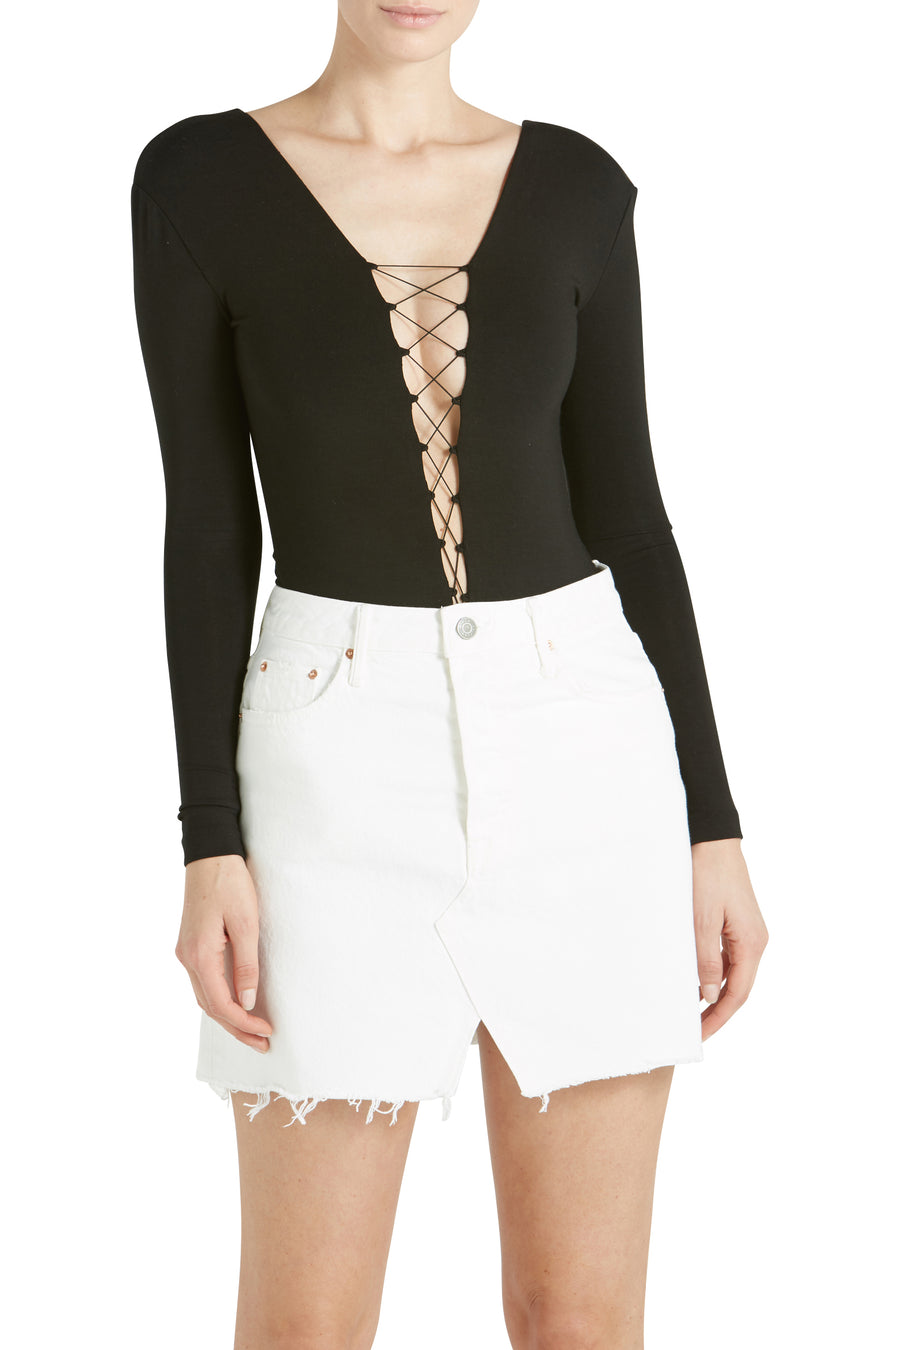 LACE UP L/S BODYSUIT